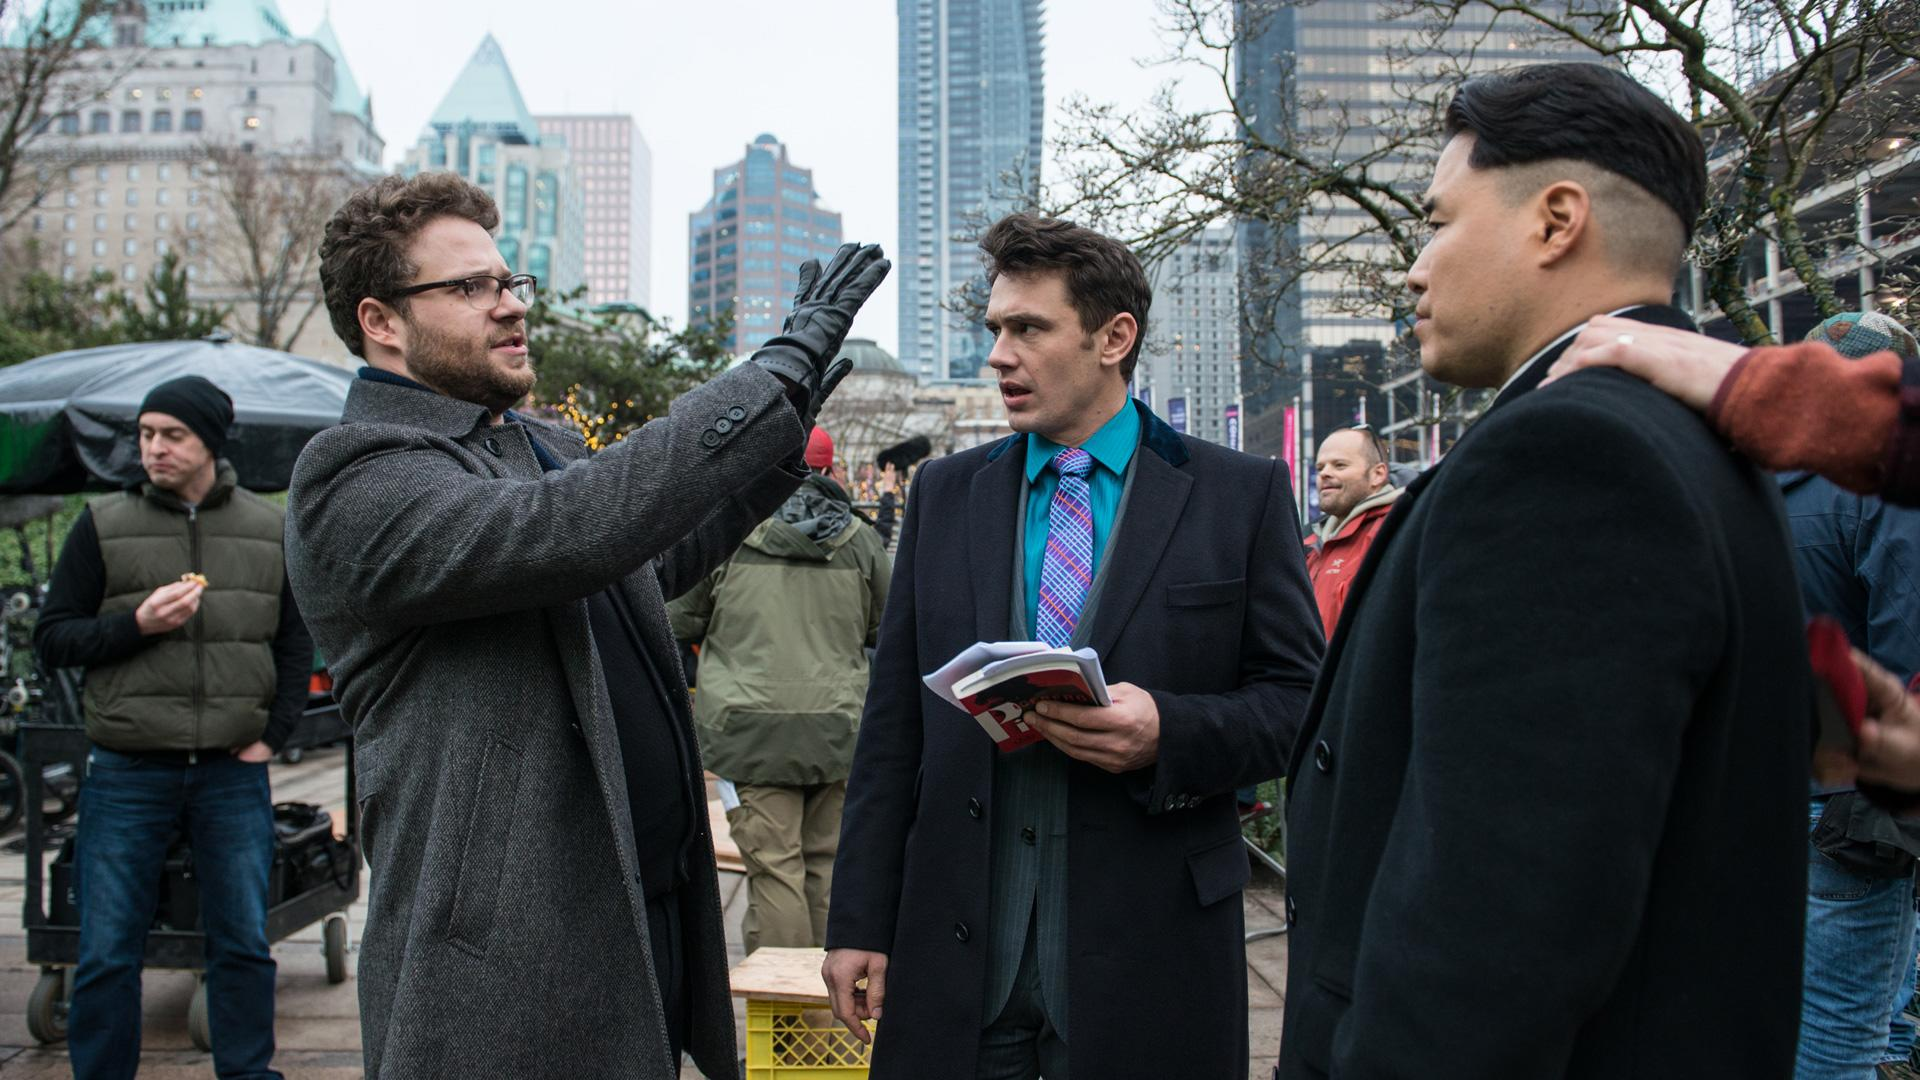 Sony Rejected Theaters' Proposal to Debut 'The Interview' in Limited Release